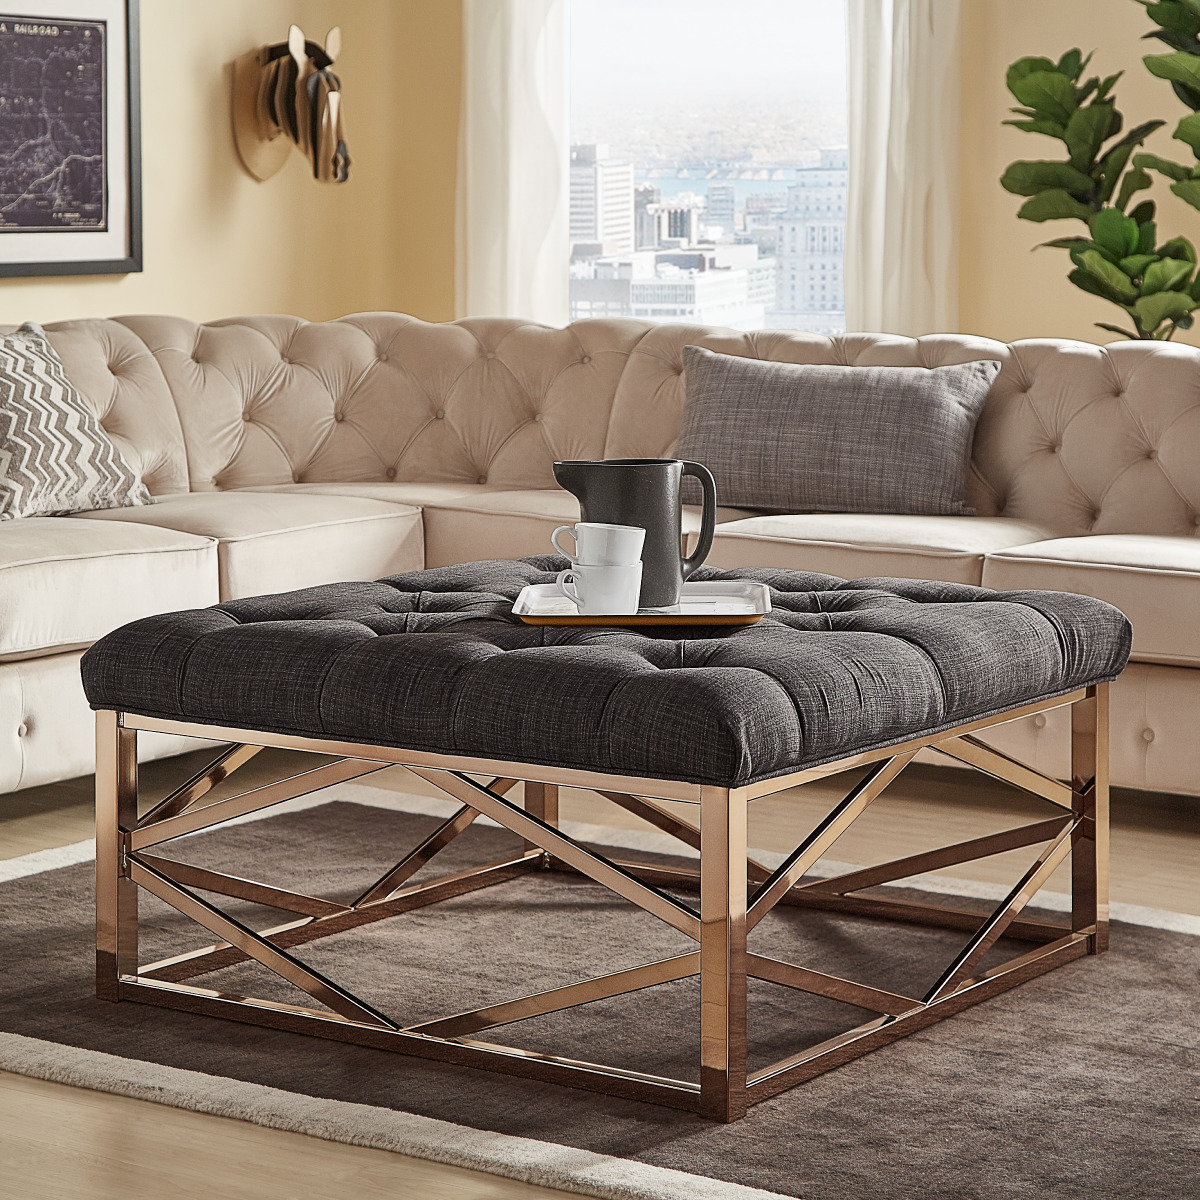 weston home libby button tufted cushion ottoman coffee table with champagne gold geometric base dark grey linen